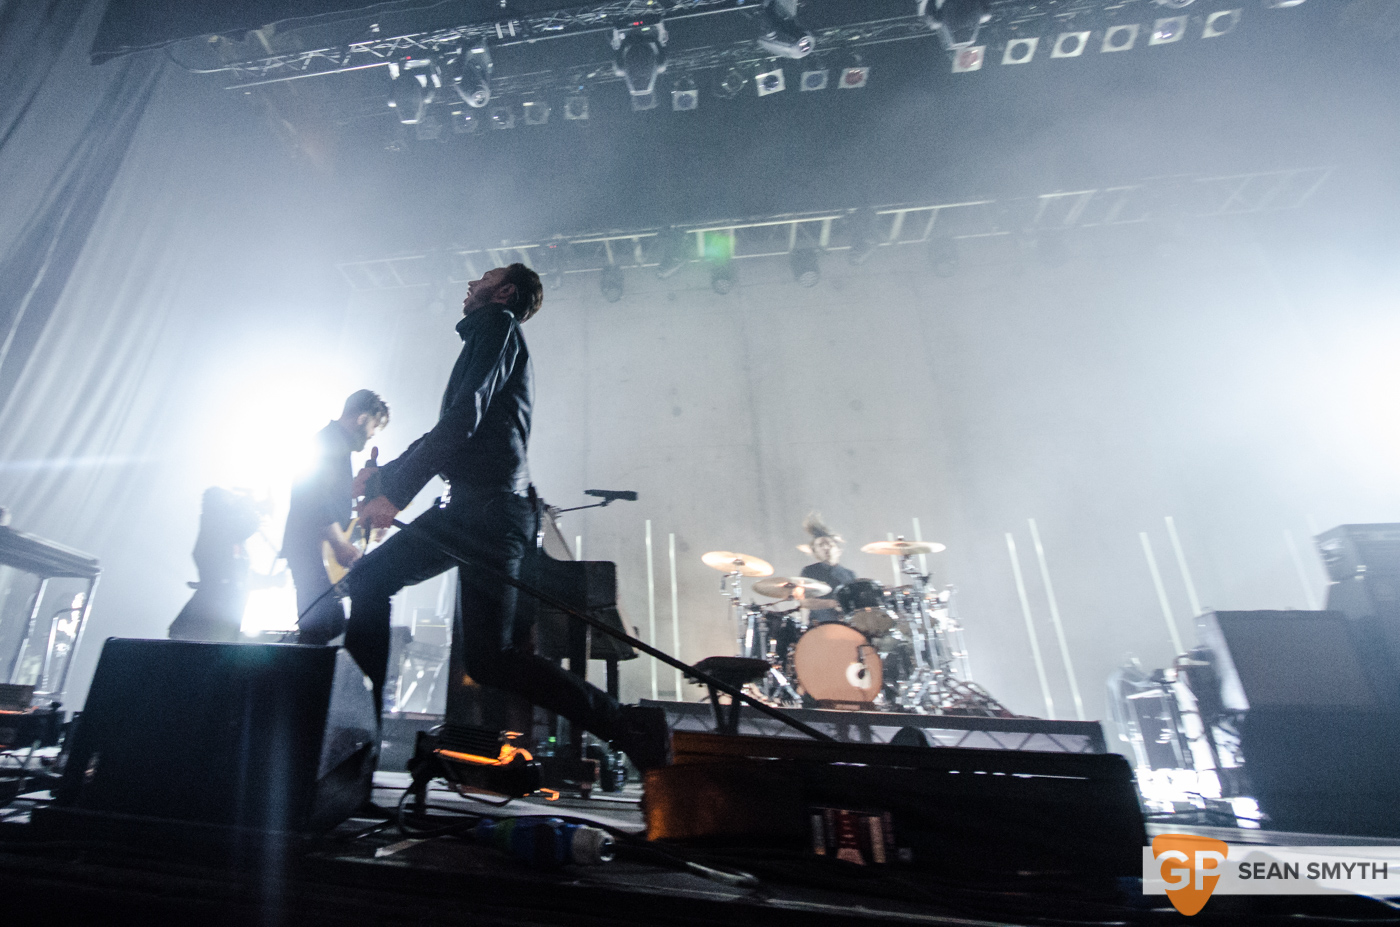 editors-at-the-olympia-theatre-by-sean-smyth-10-10-15-15-of-28_22077942202_o